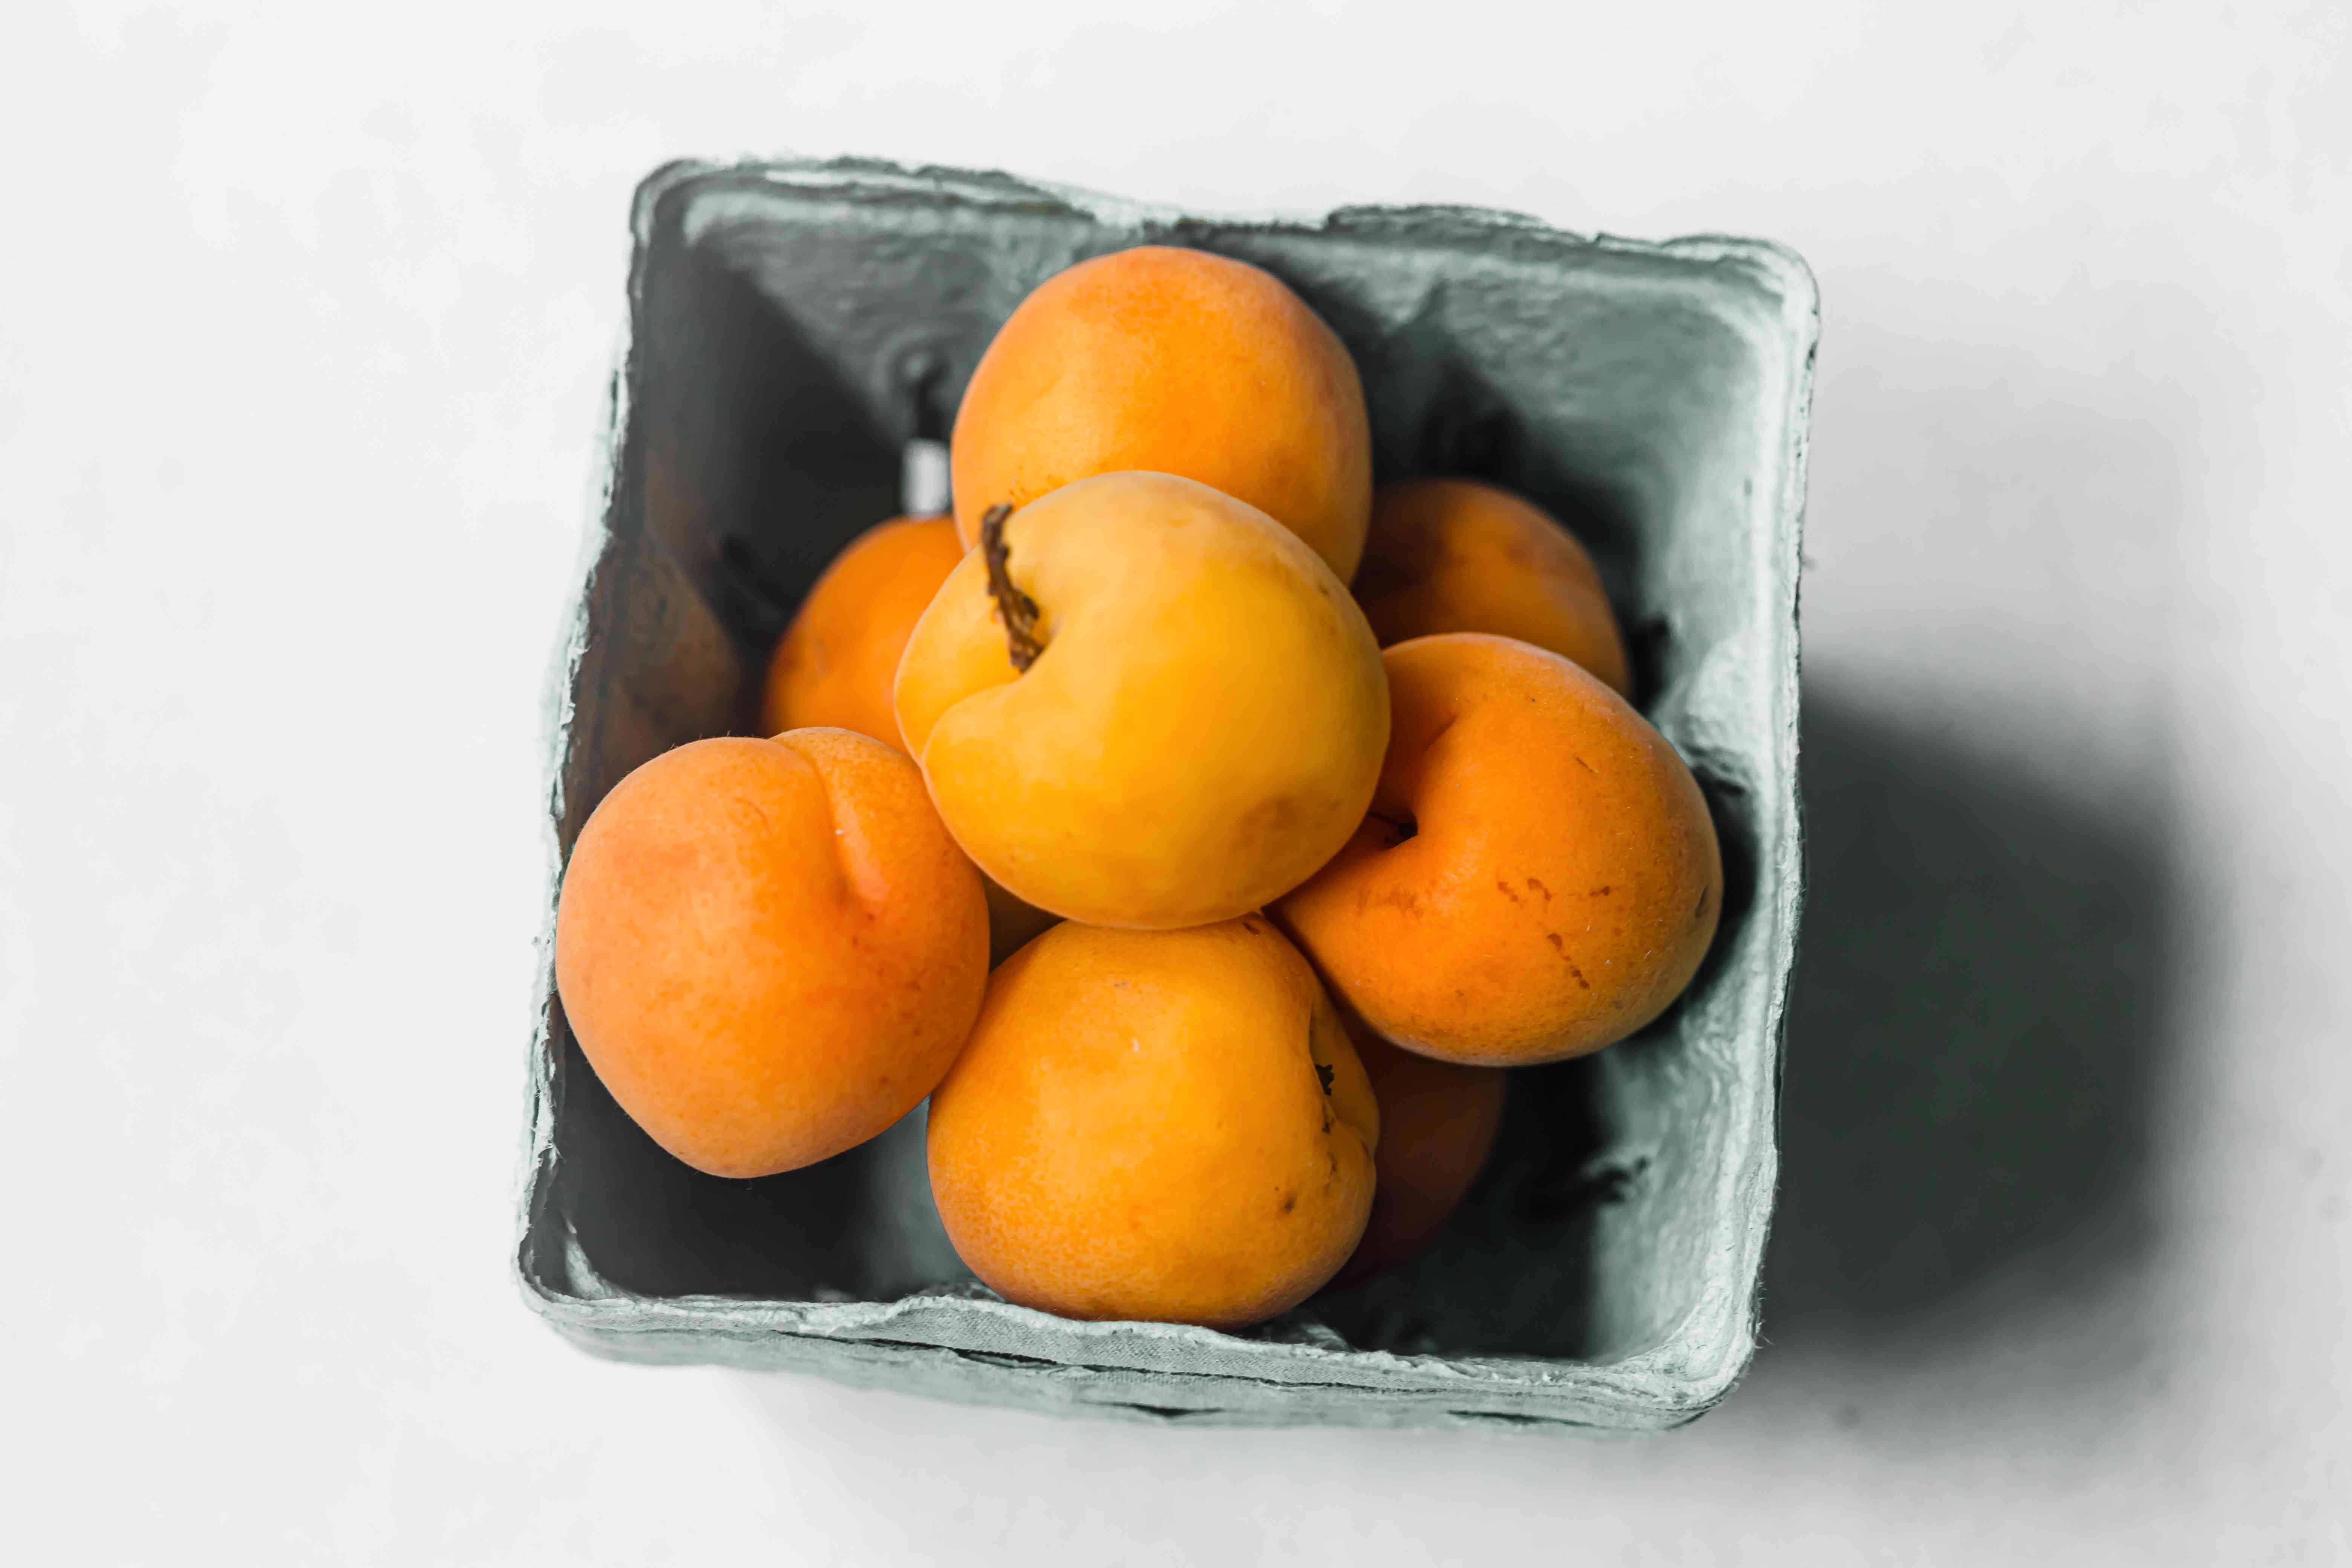 Apricots in a cardboard container